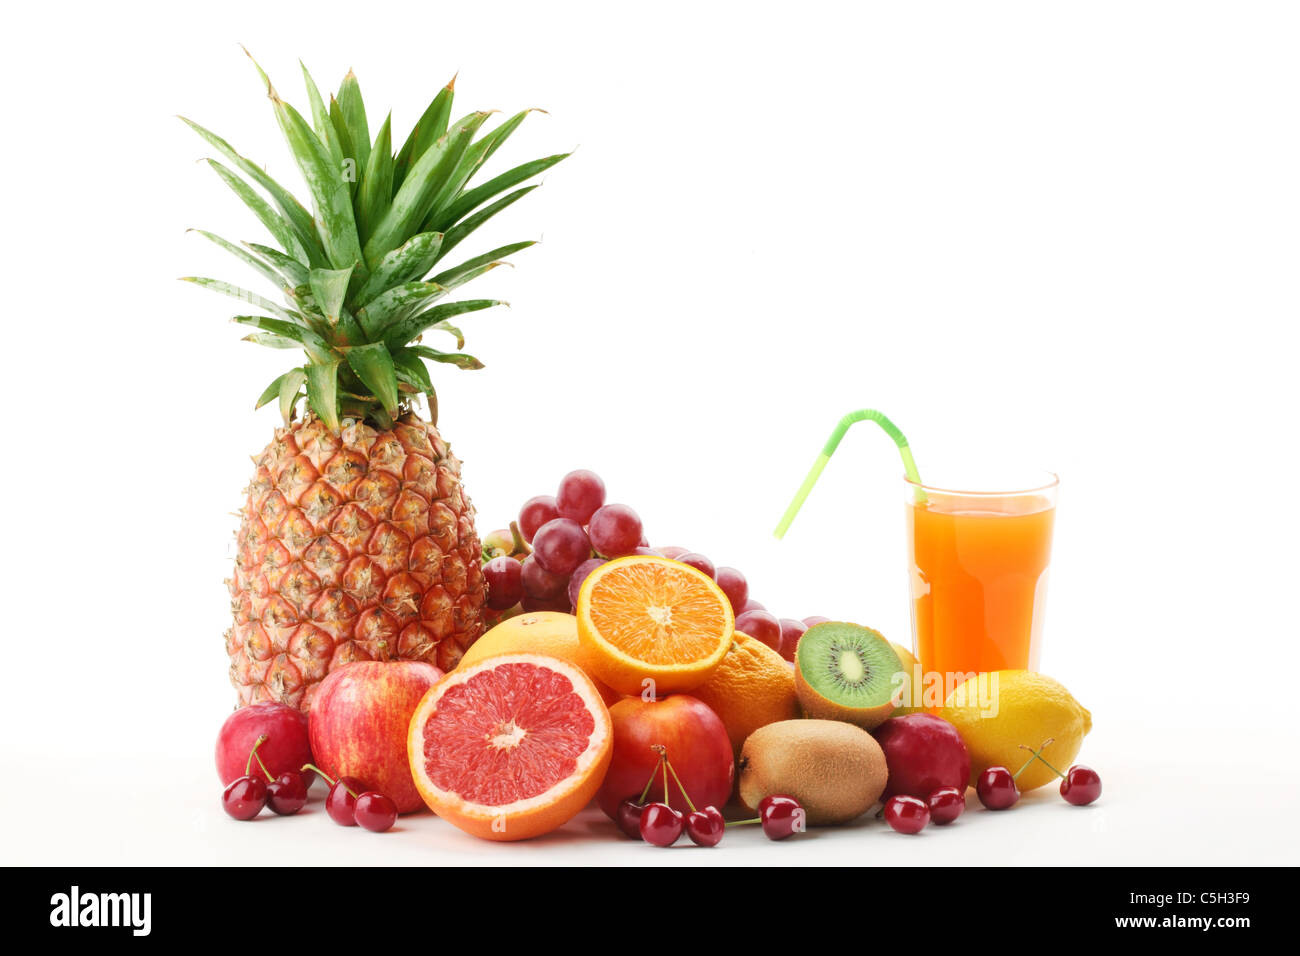 Pile of fruits with fruit juice on a white background. Stock Photo